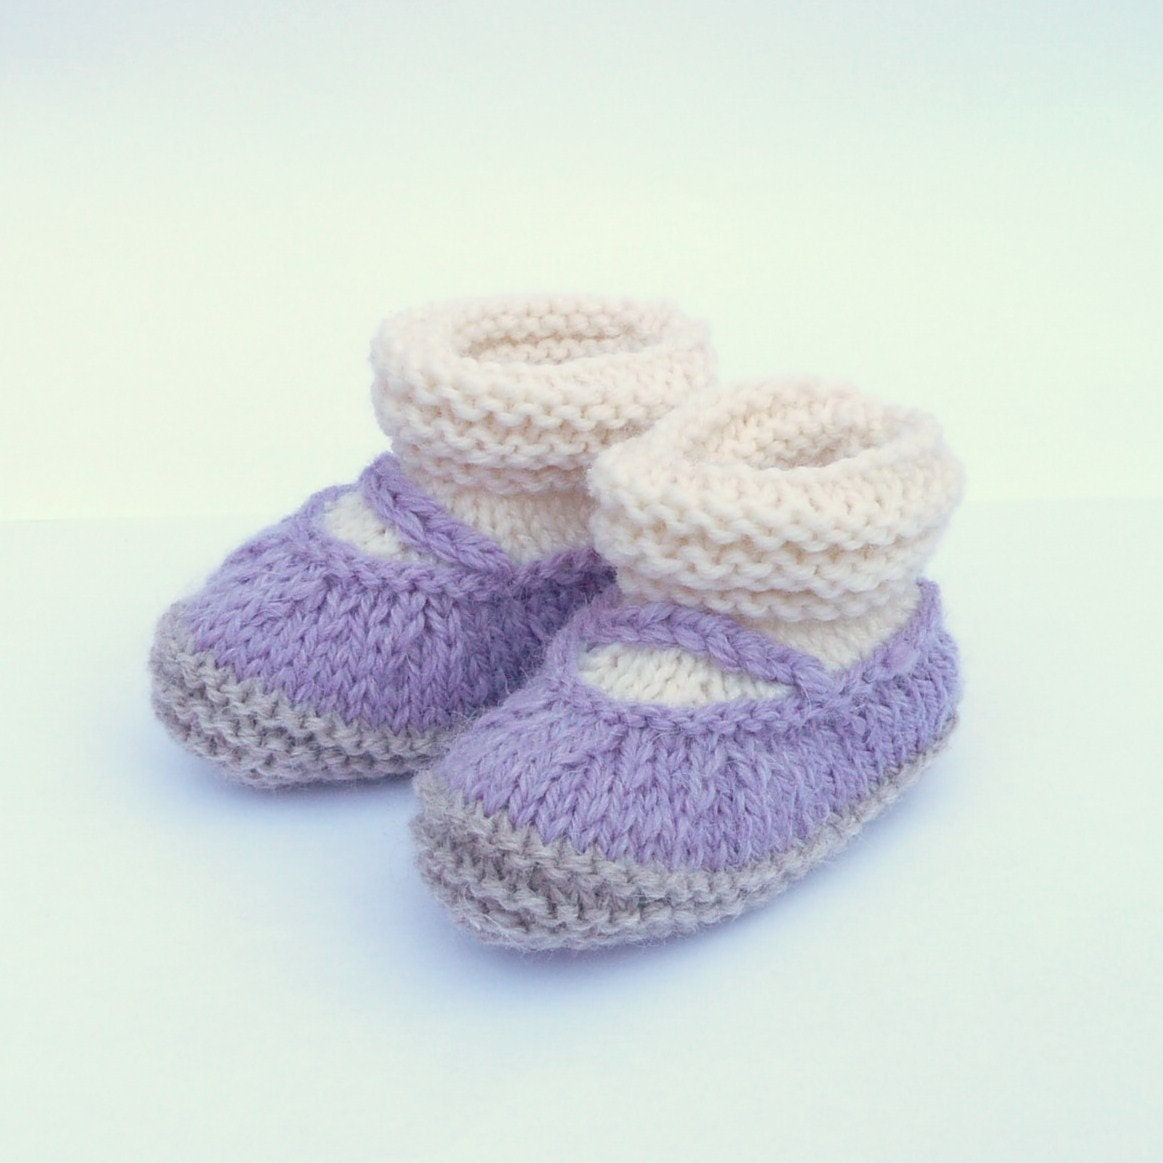 Wool Diaper Cover Knitting Pattern : Knitting PATTERN BABY Booties All in One Baby Mary Jane Shoes